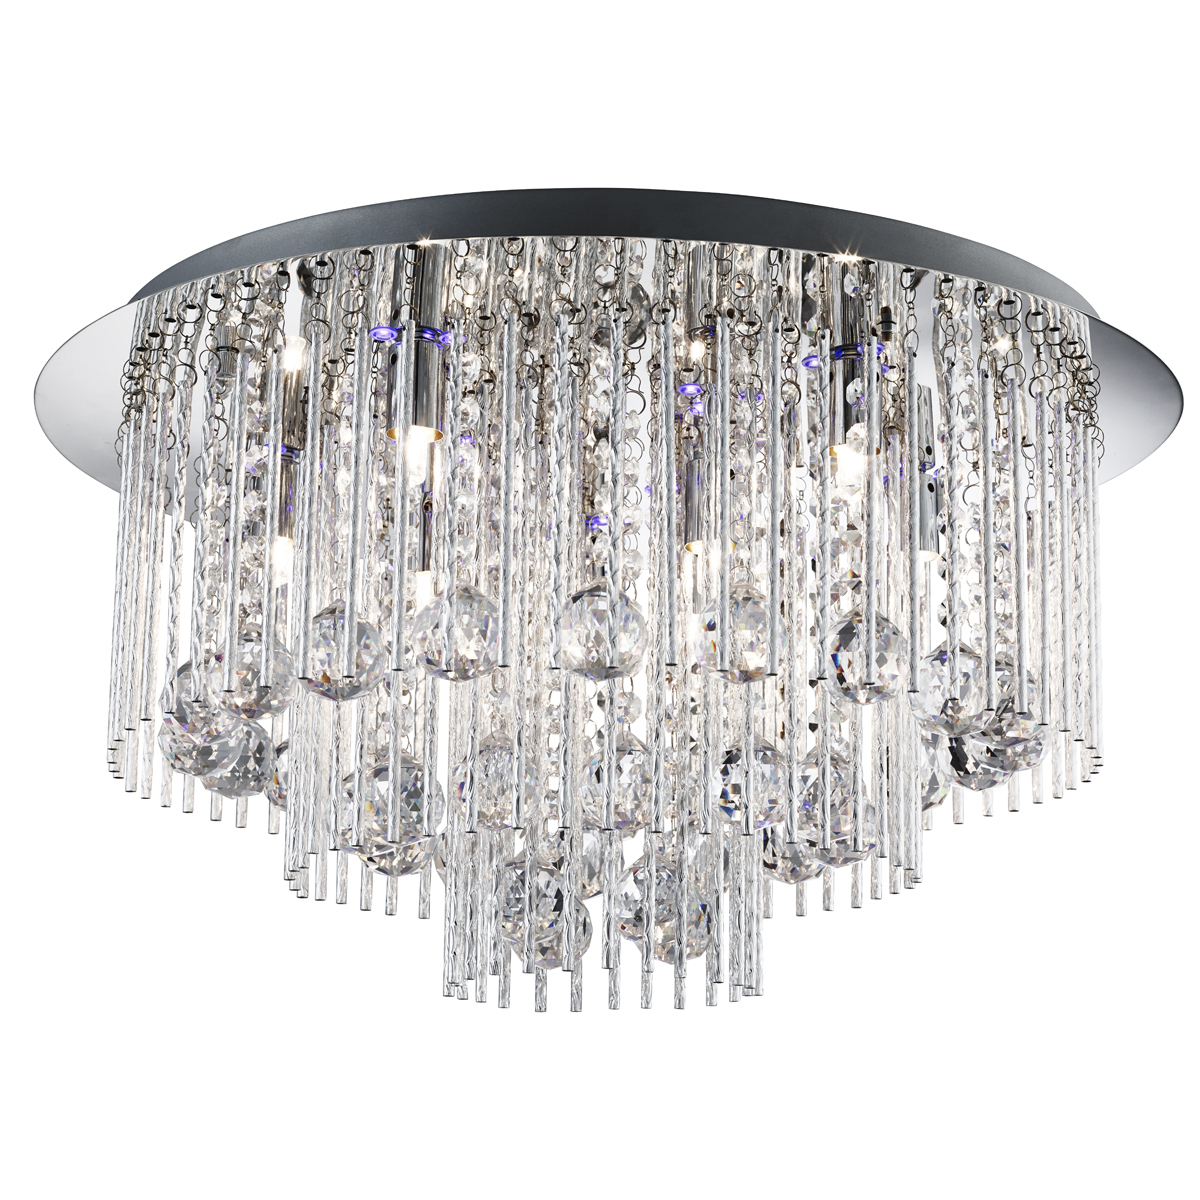 Home - Astral Lighting Ltd pertaining to Recent Hatfield 3-Light Novelty Chandeliers